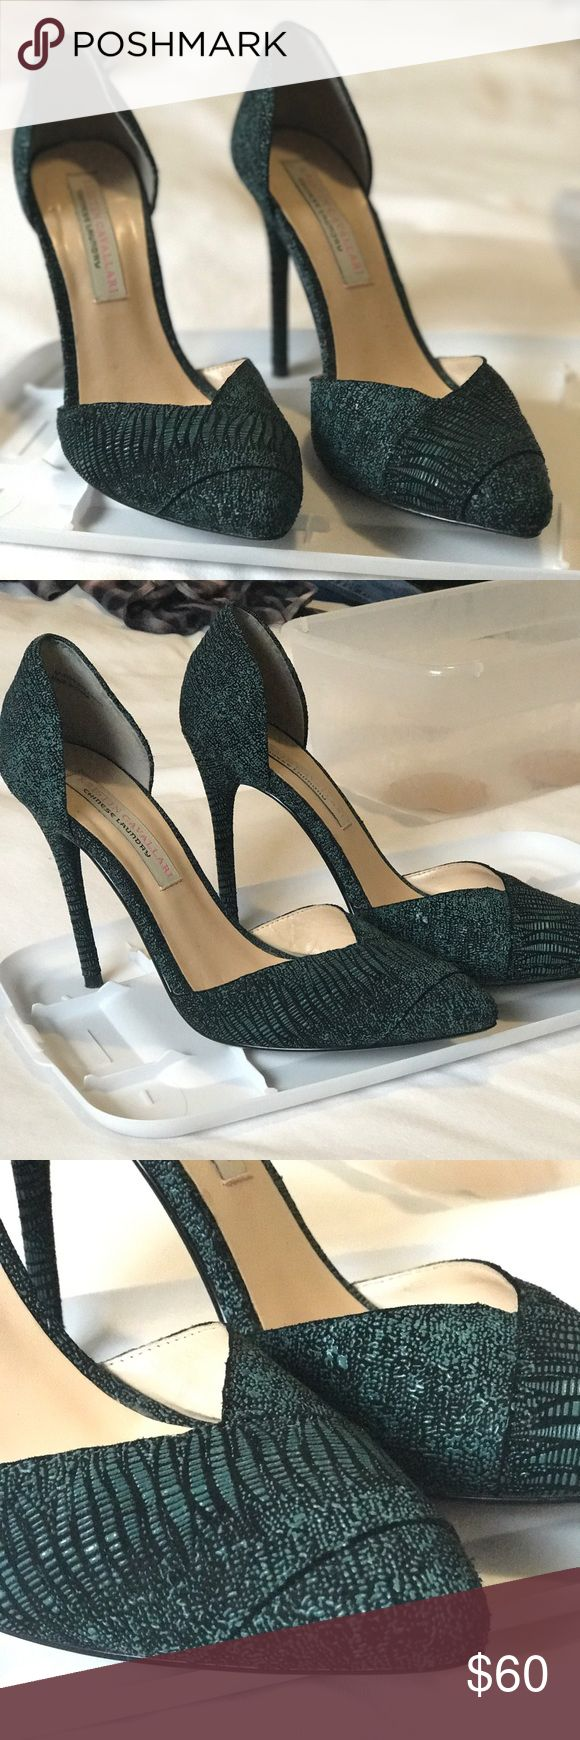 Kristin Cavalari by Chinese laundry heels Kristin Cavalari by Chinese laundry heels, the material is in perfect condition. Chinese Laundry Shoes Heels